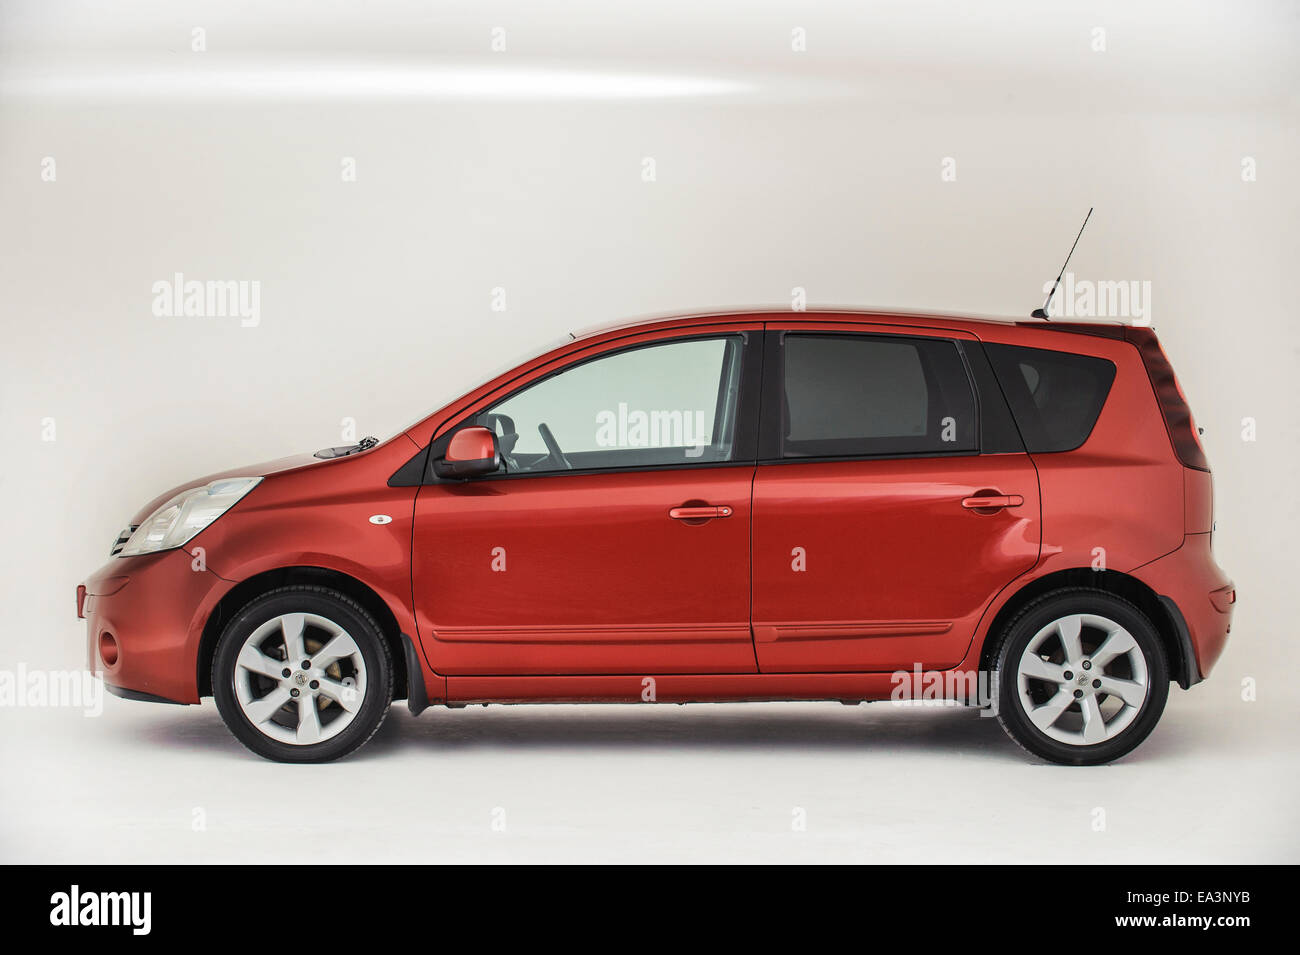 2009 Nissan Note - Stock Image